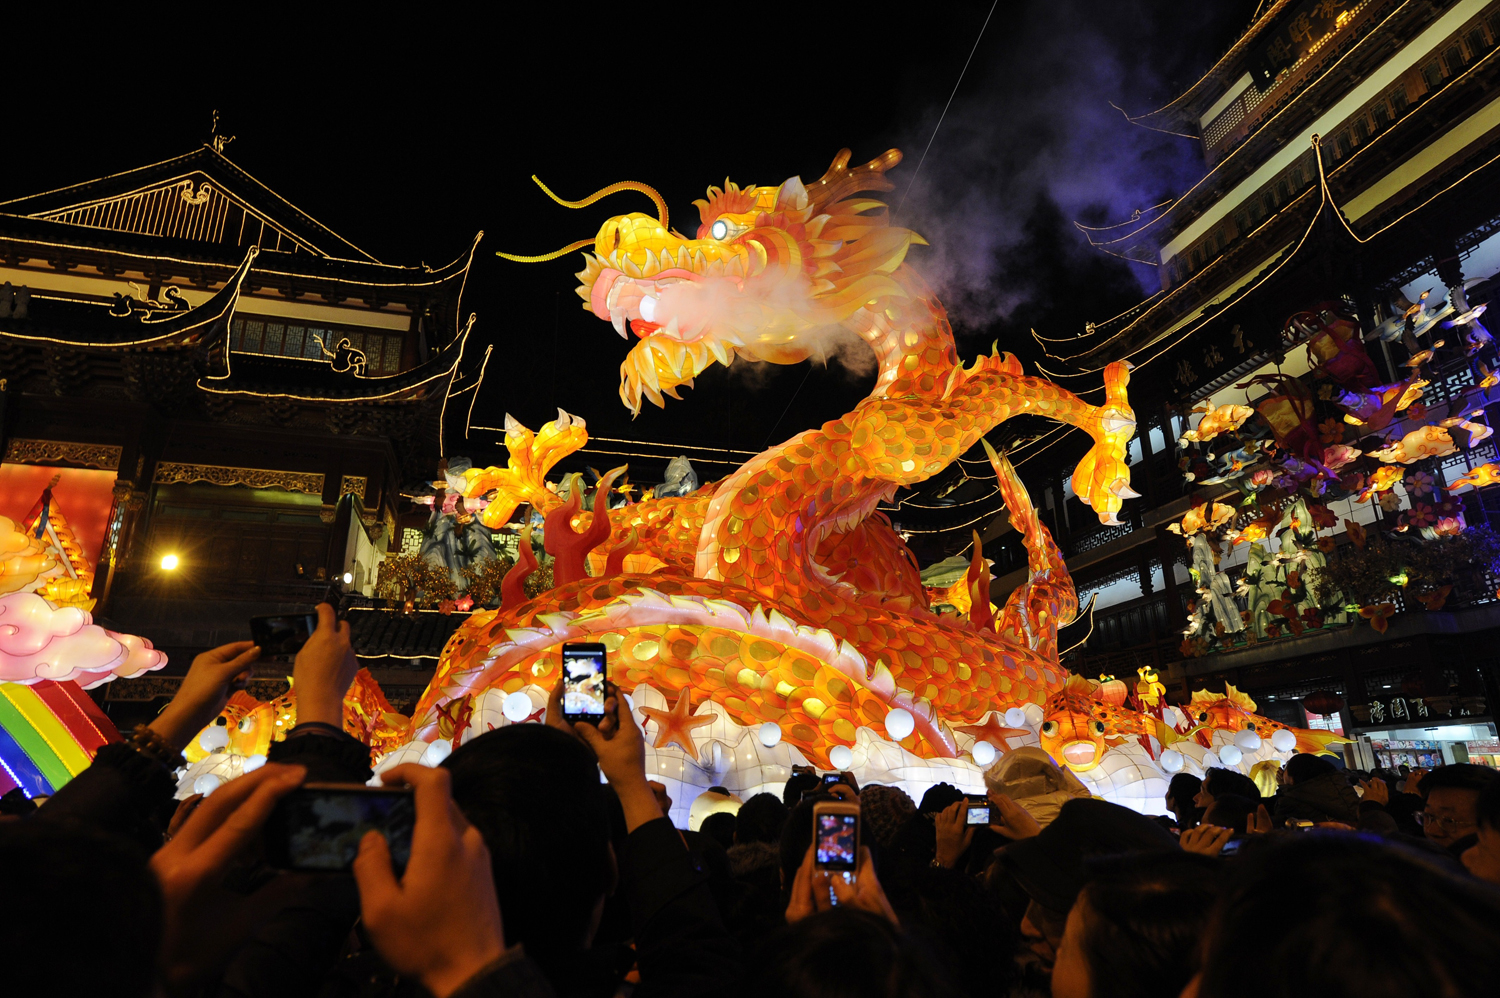 10 Best Places to Celebrate New Year's Eve places to celebrate new year's 10 Best Places to Celebrate New Year's Eve parade dragon